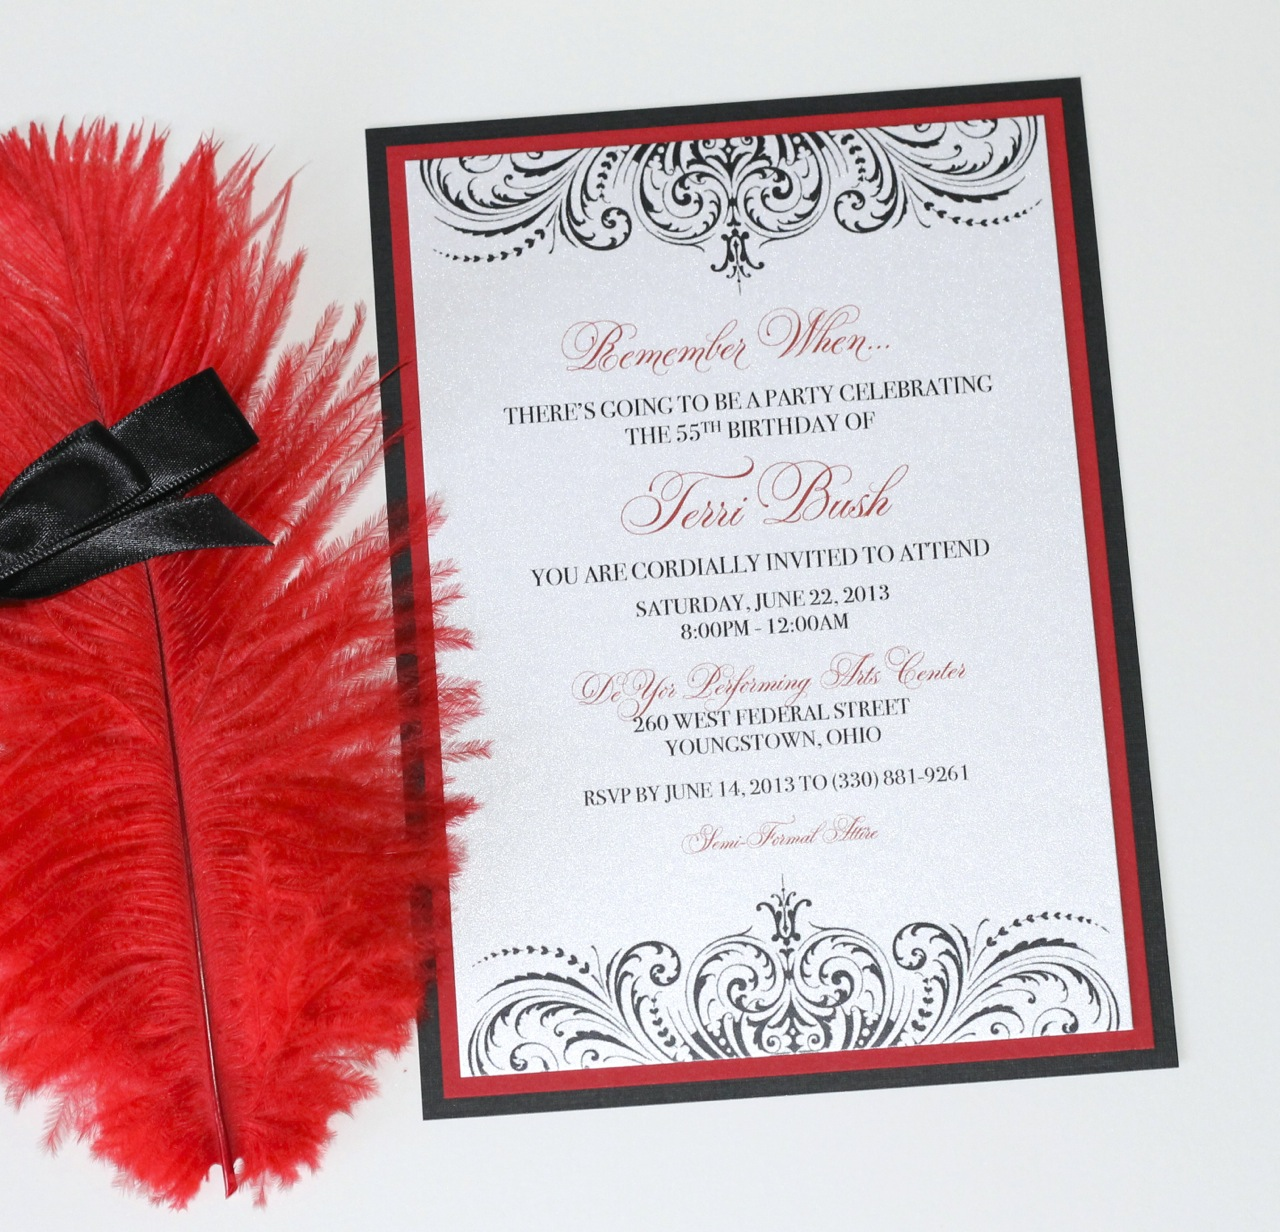 Custom 55th Birthday Invitation - Moulin Rouge Style - Black, White ...